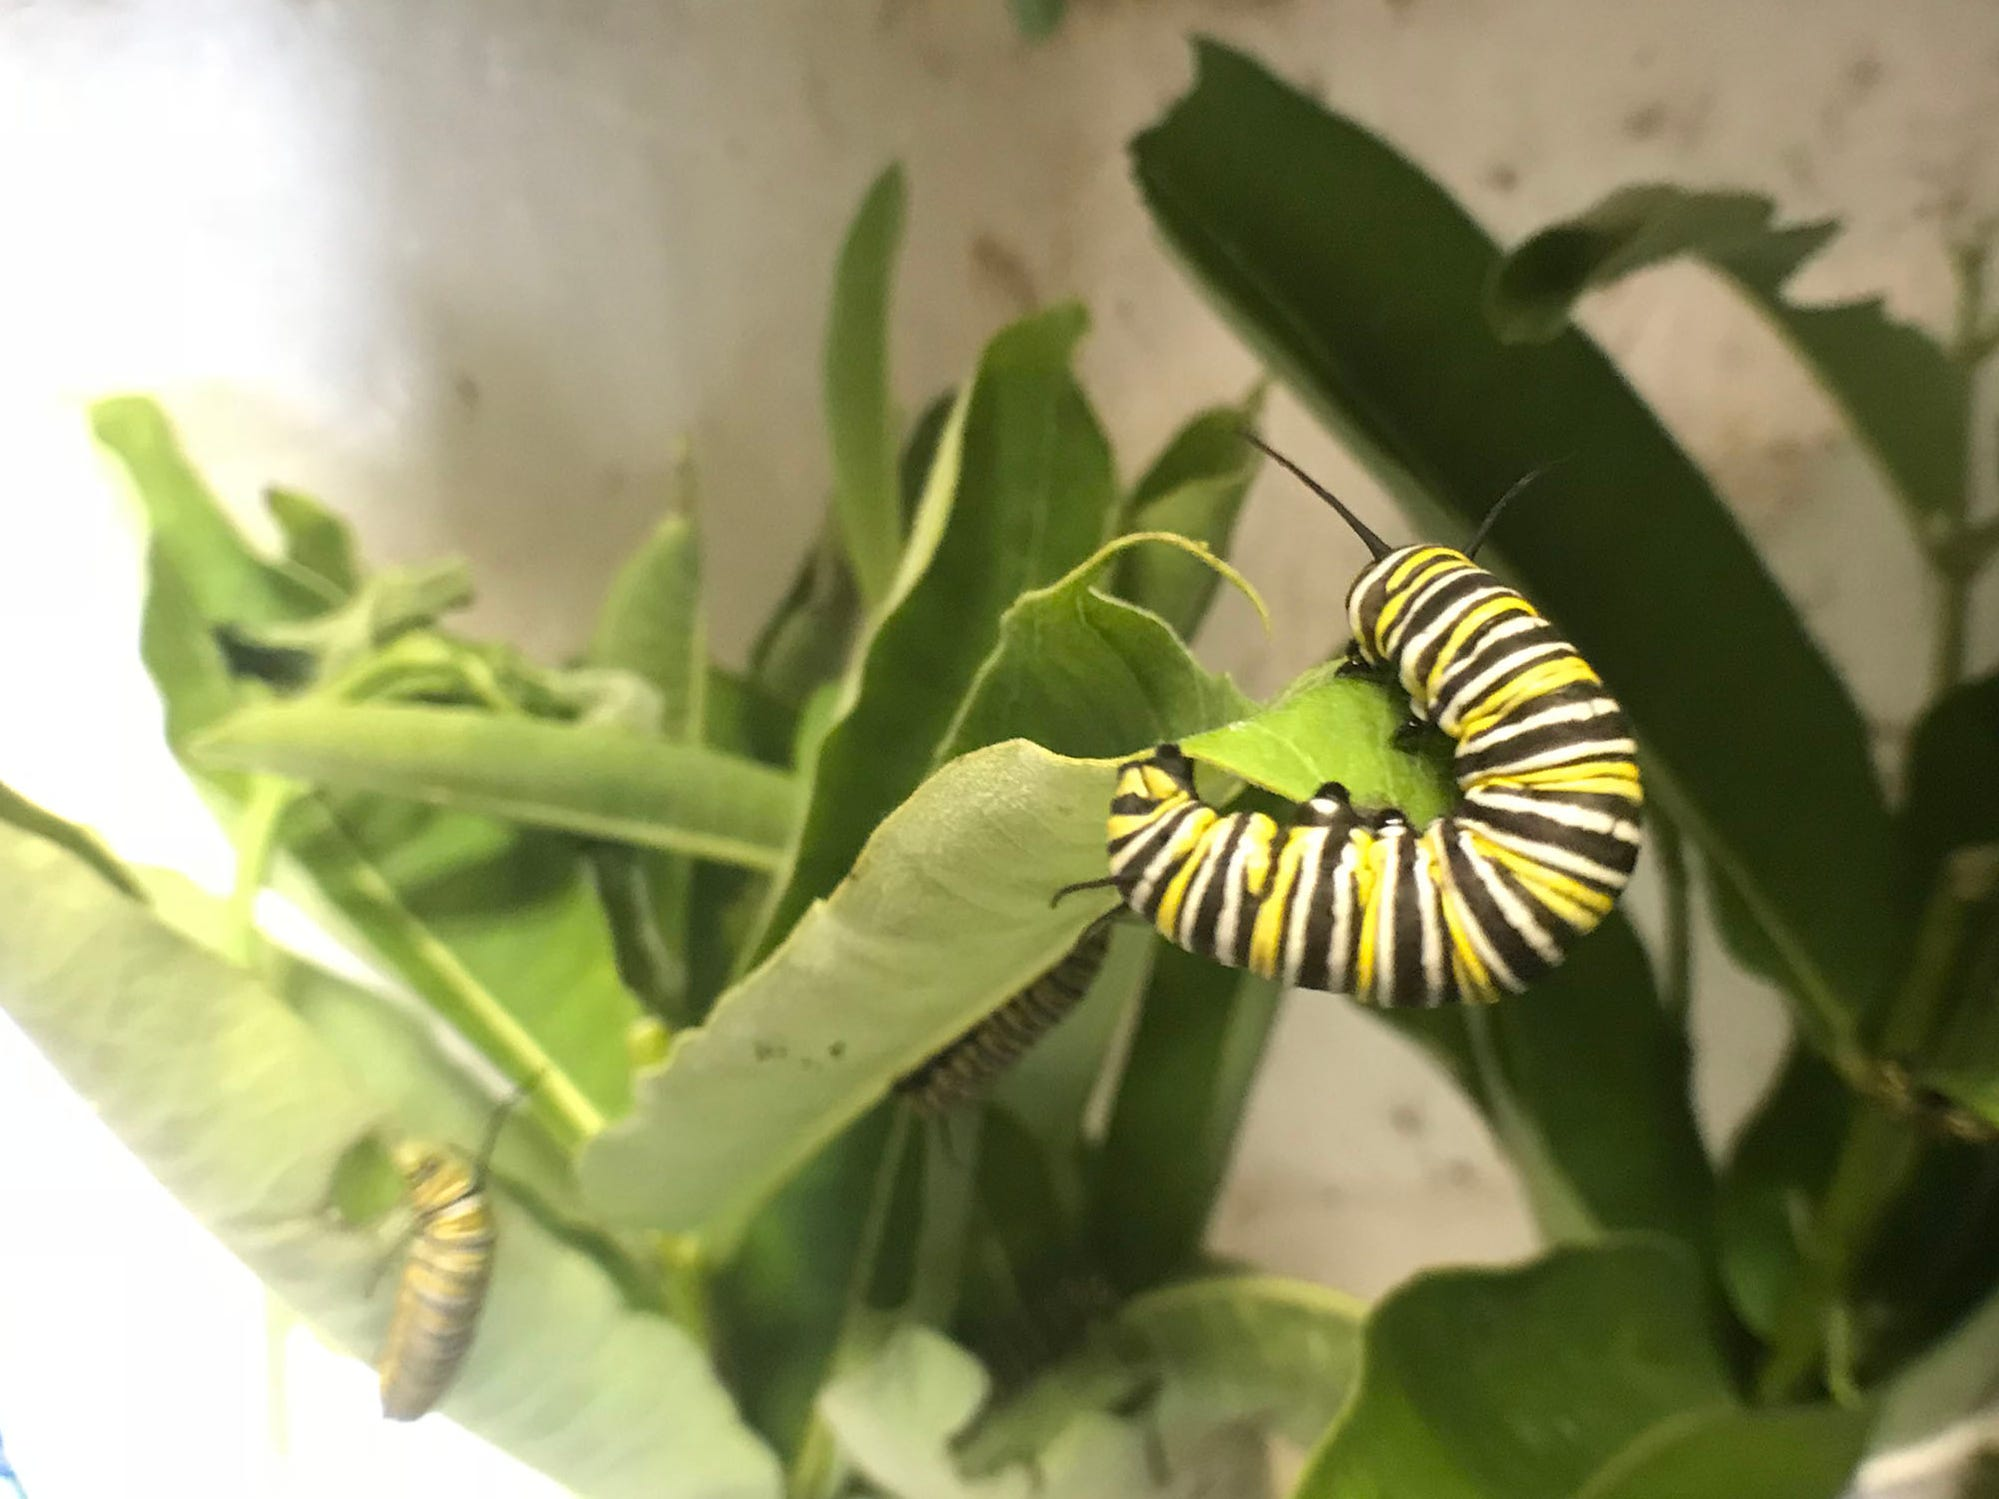 Caterpillars feed on plants. Vonnie Black has raised and released monarch butterflies in her Chambersburg area garage for 20 years.